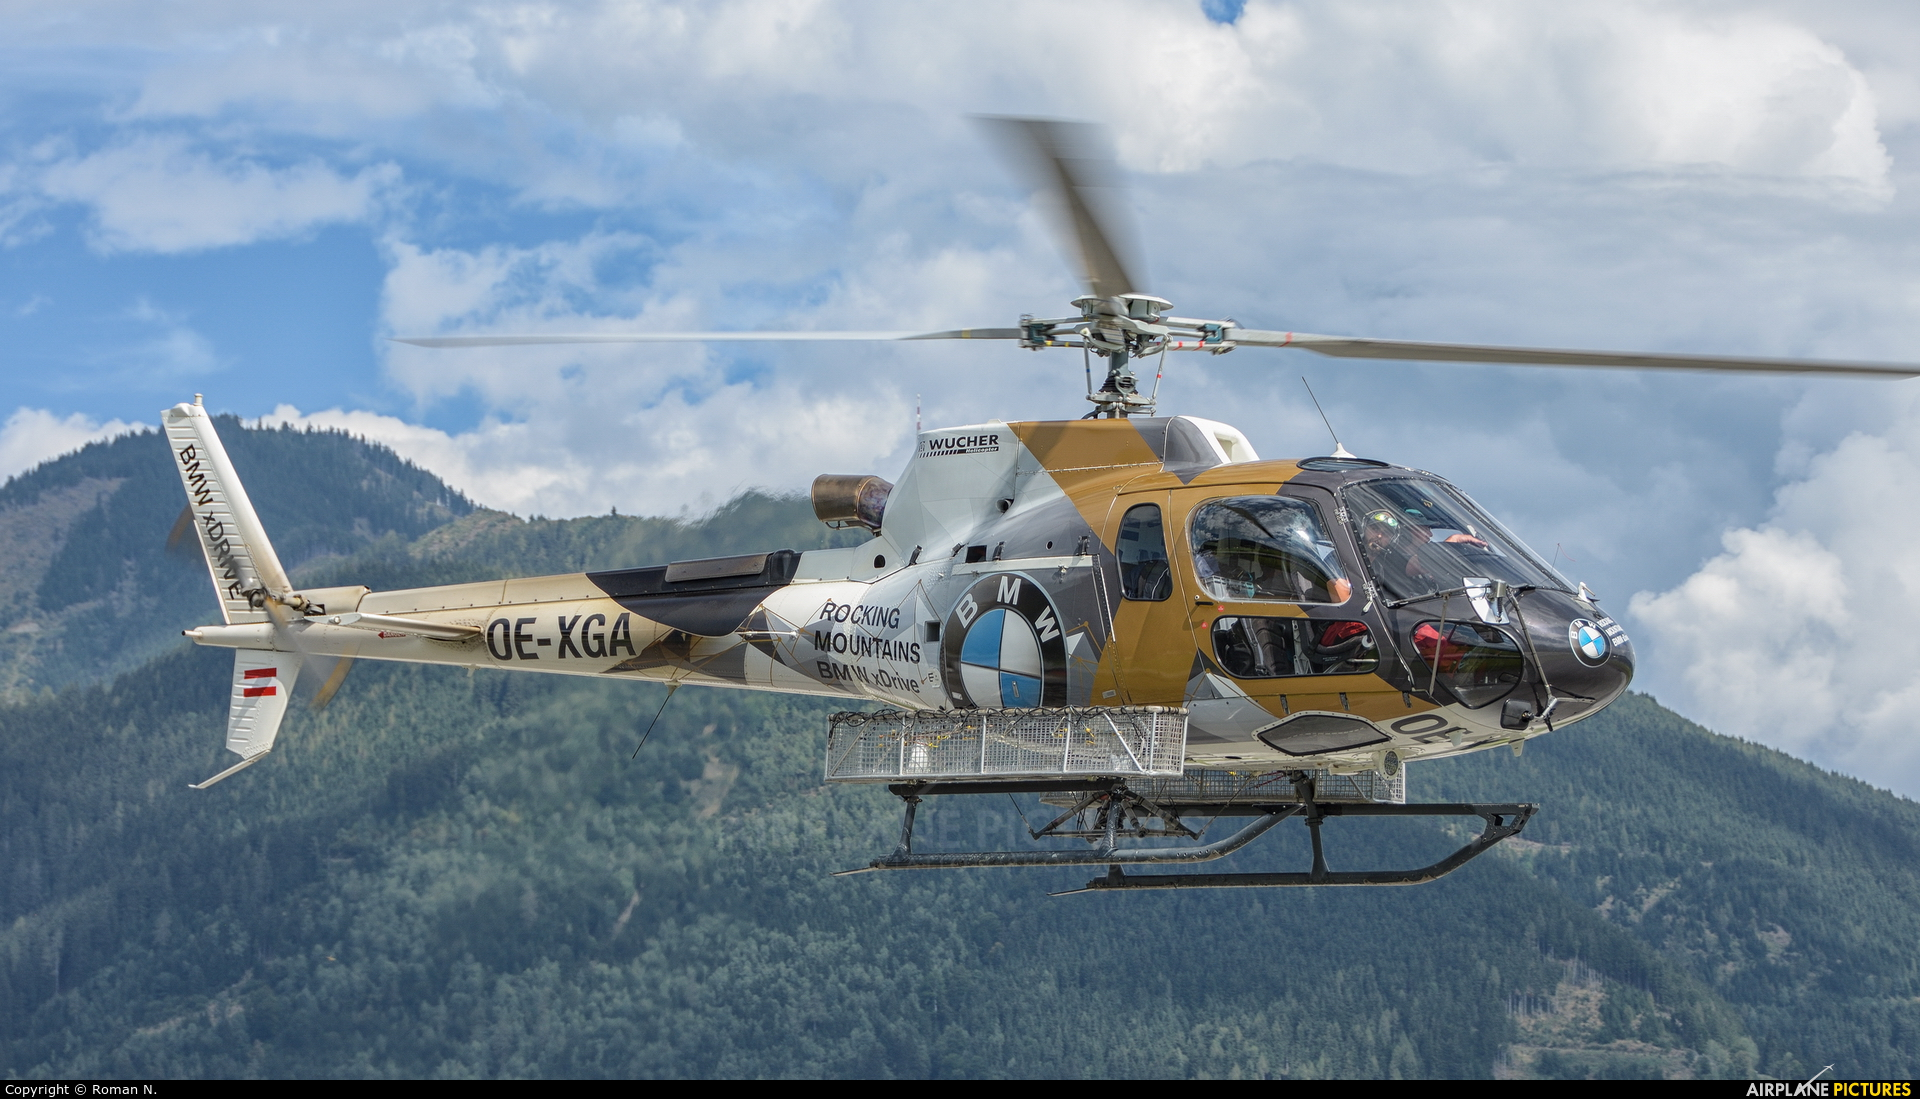 Wucher Helicopter OE-XGA aircraft at Zell am See